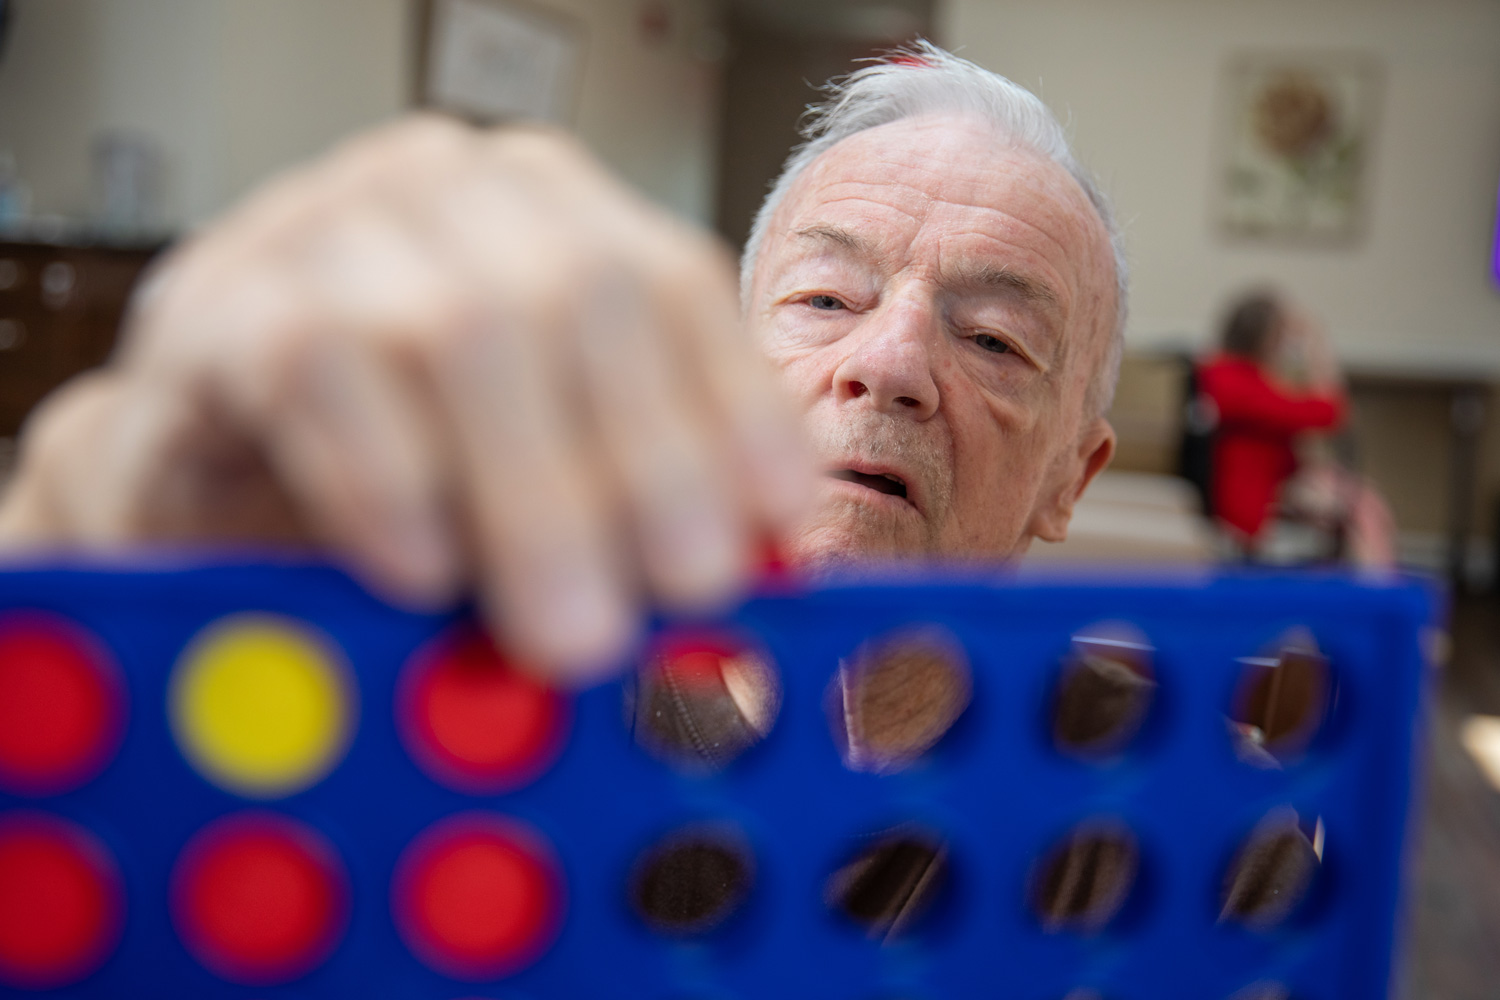 resident playing connect four